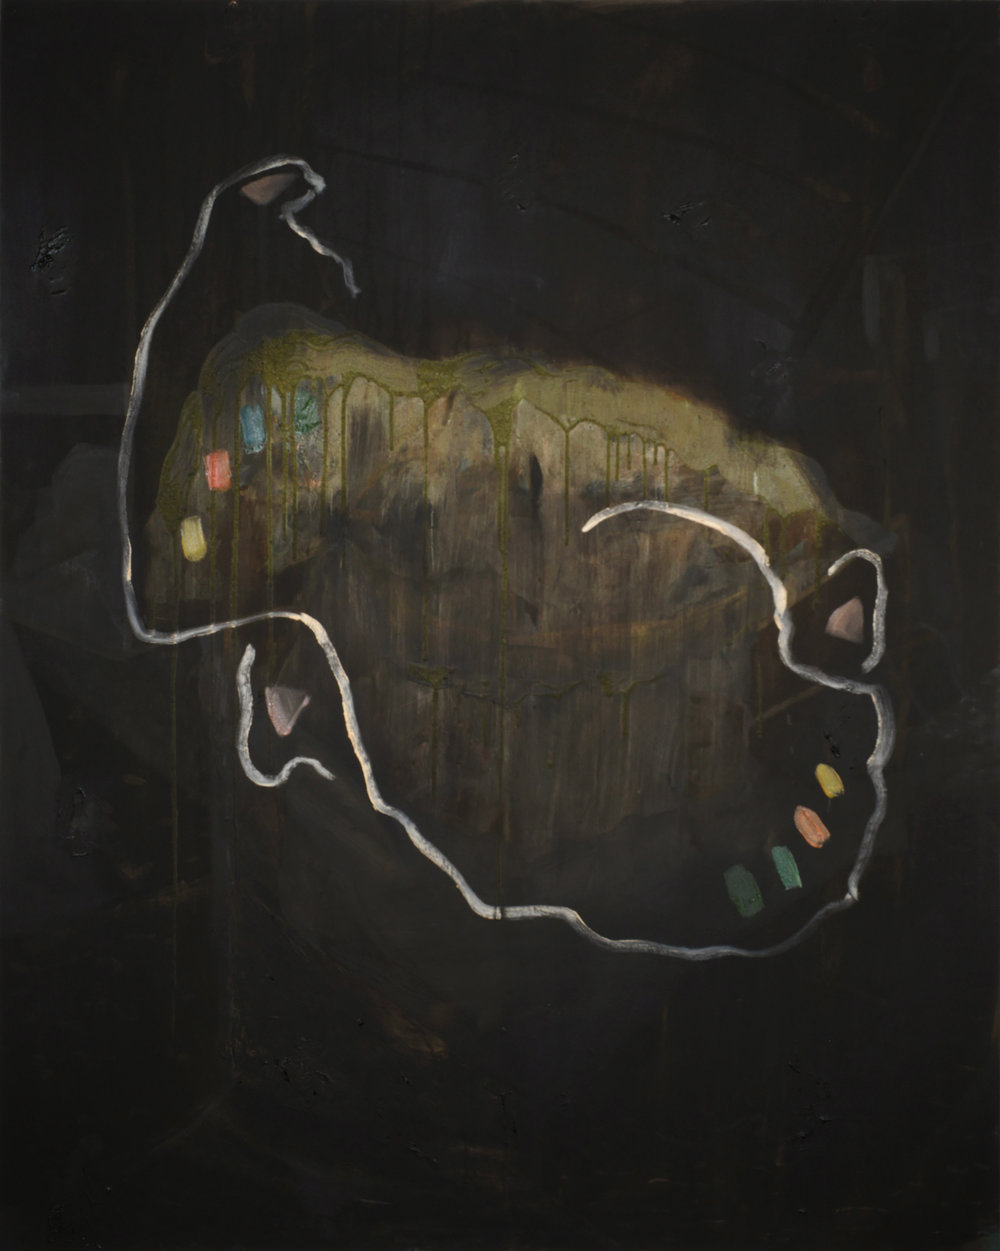 Interior Sun, 2013, Oil on reversed black primed canvas, 150 x 125 cm